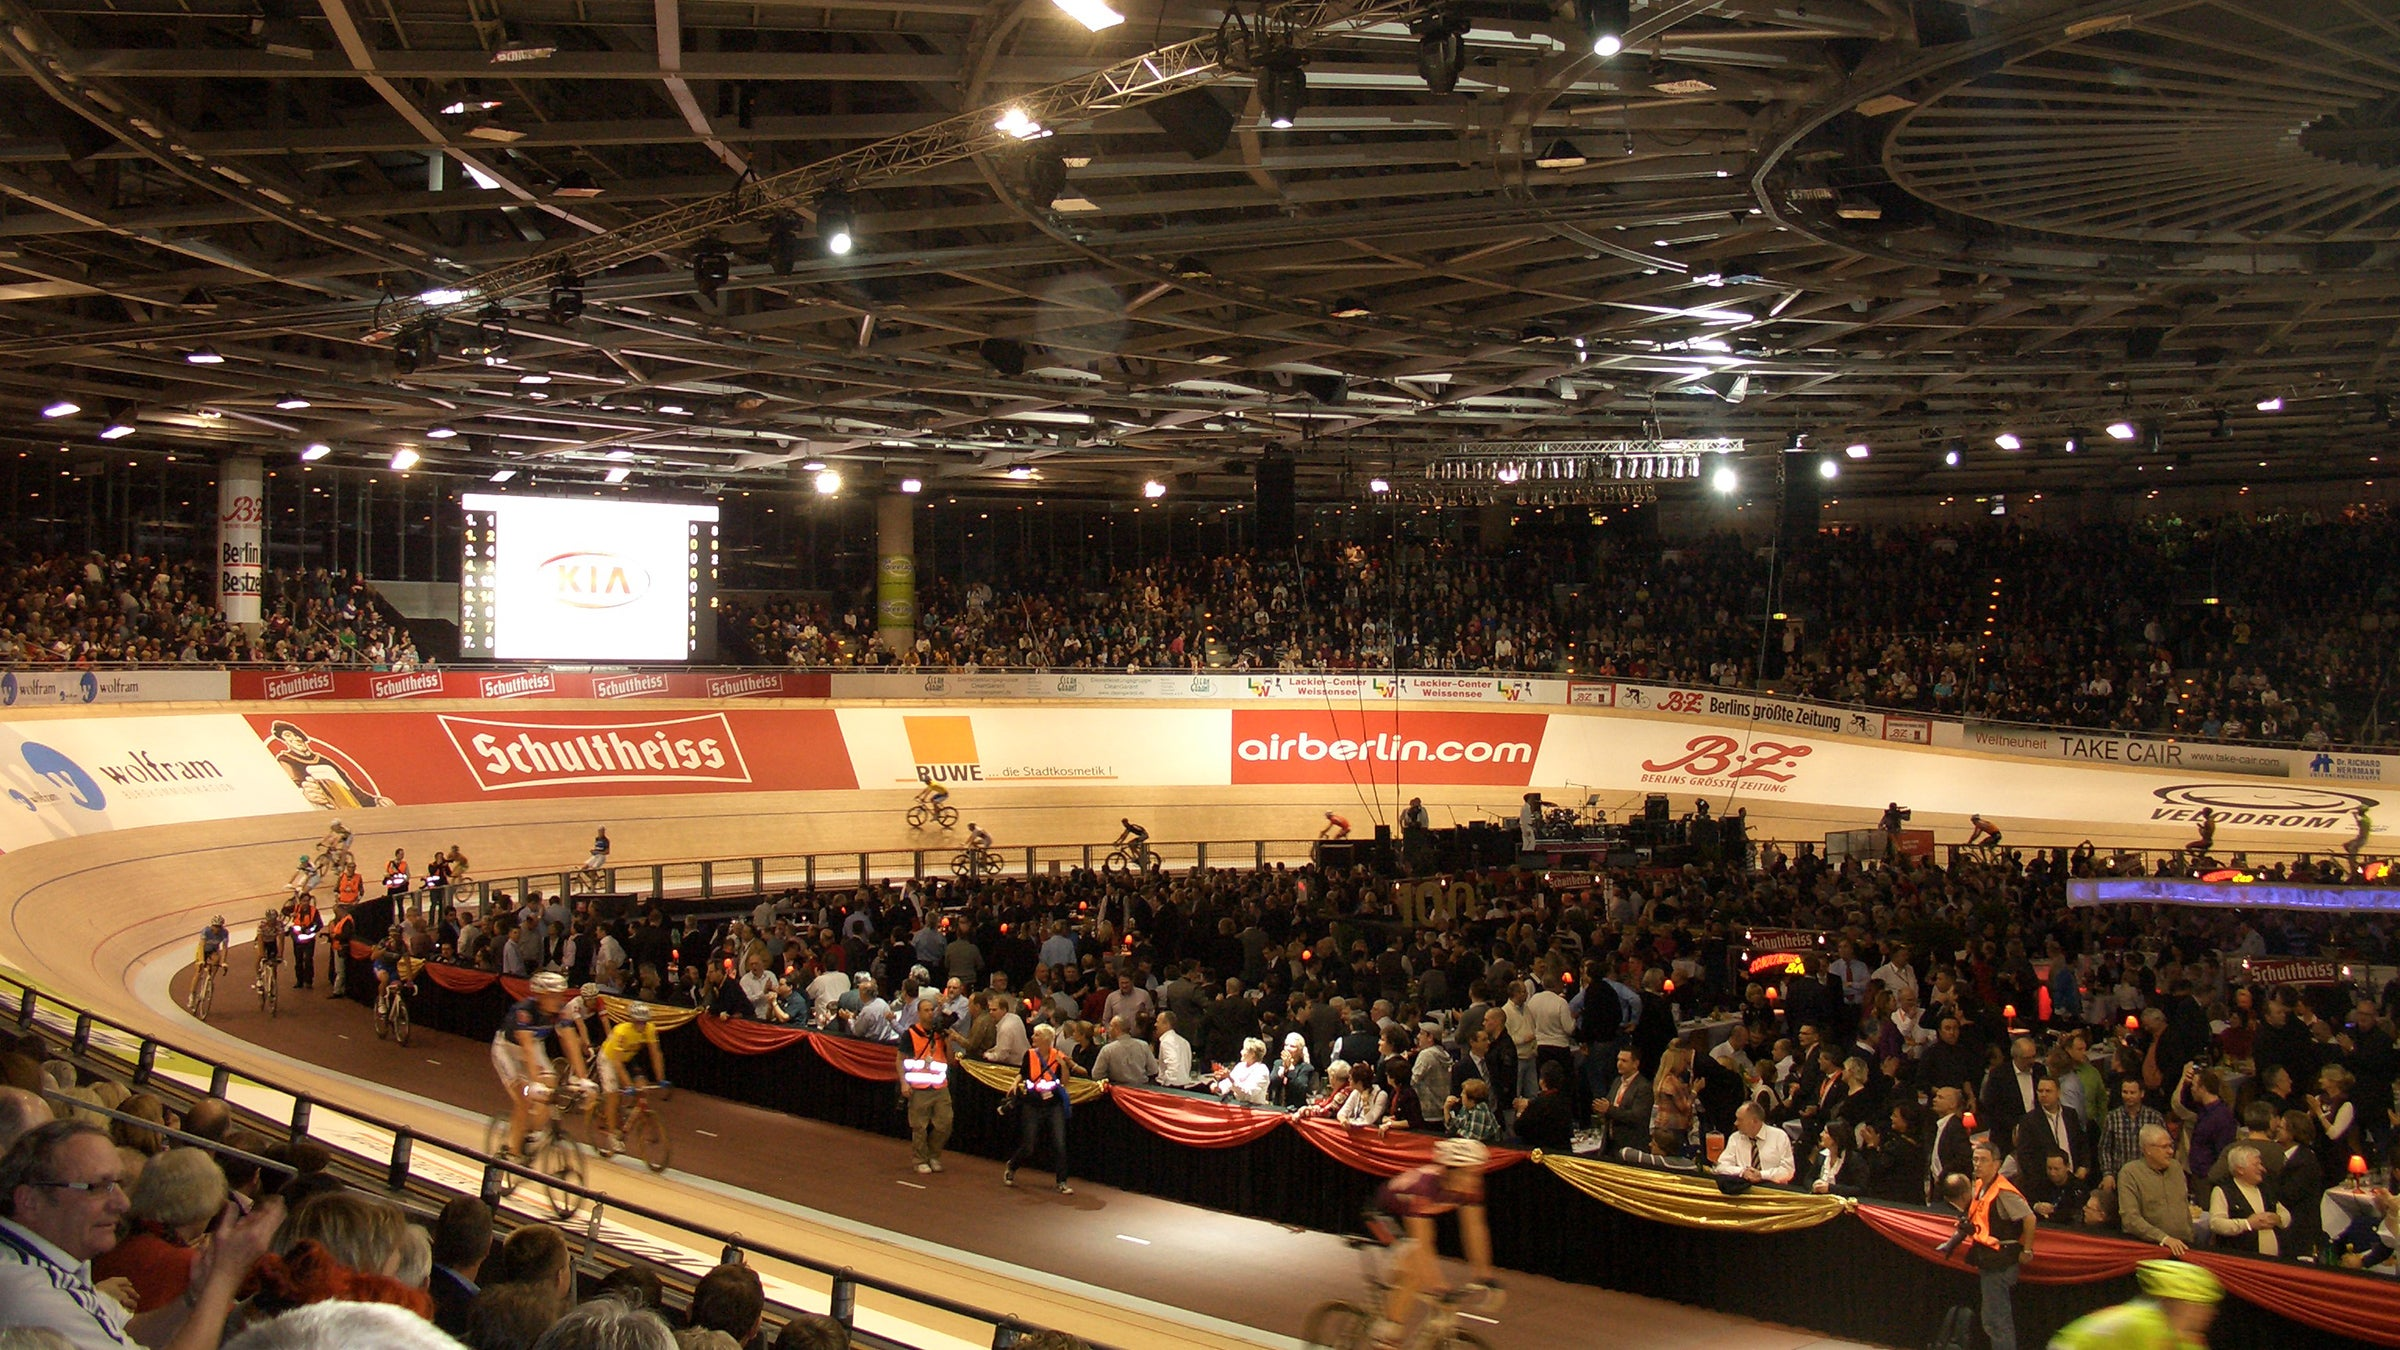 The Berlin Velodrome has long straightaways and steep banking.